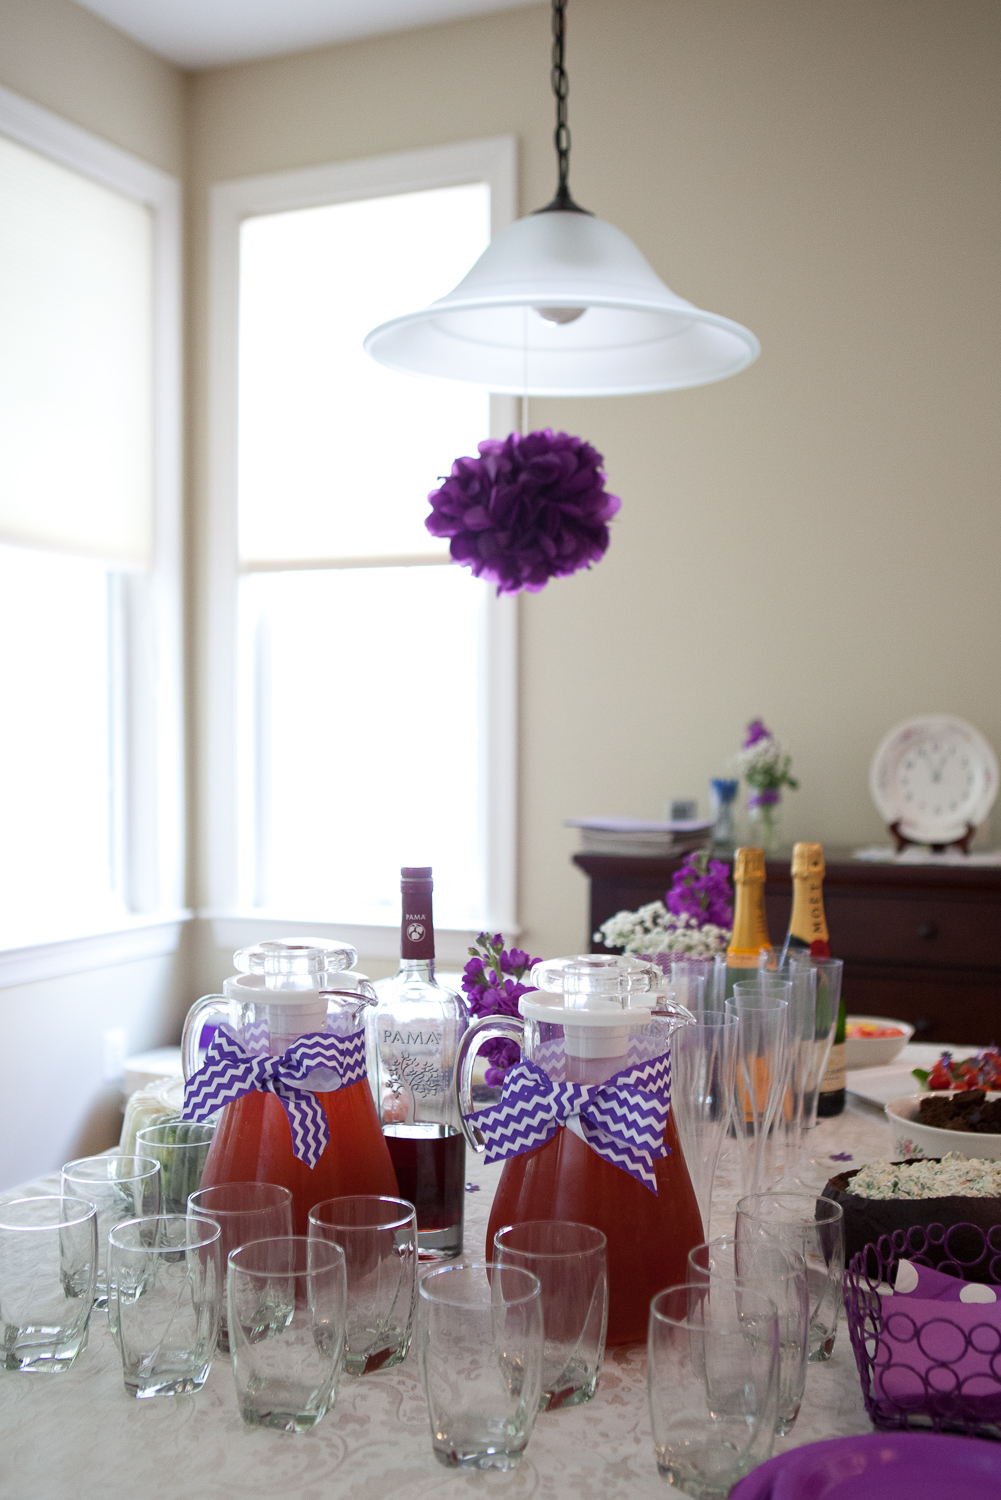 why-hire-a-photographer-for-your-bridal-shower-7.jpg